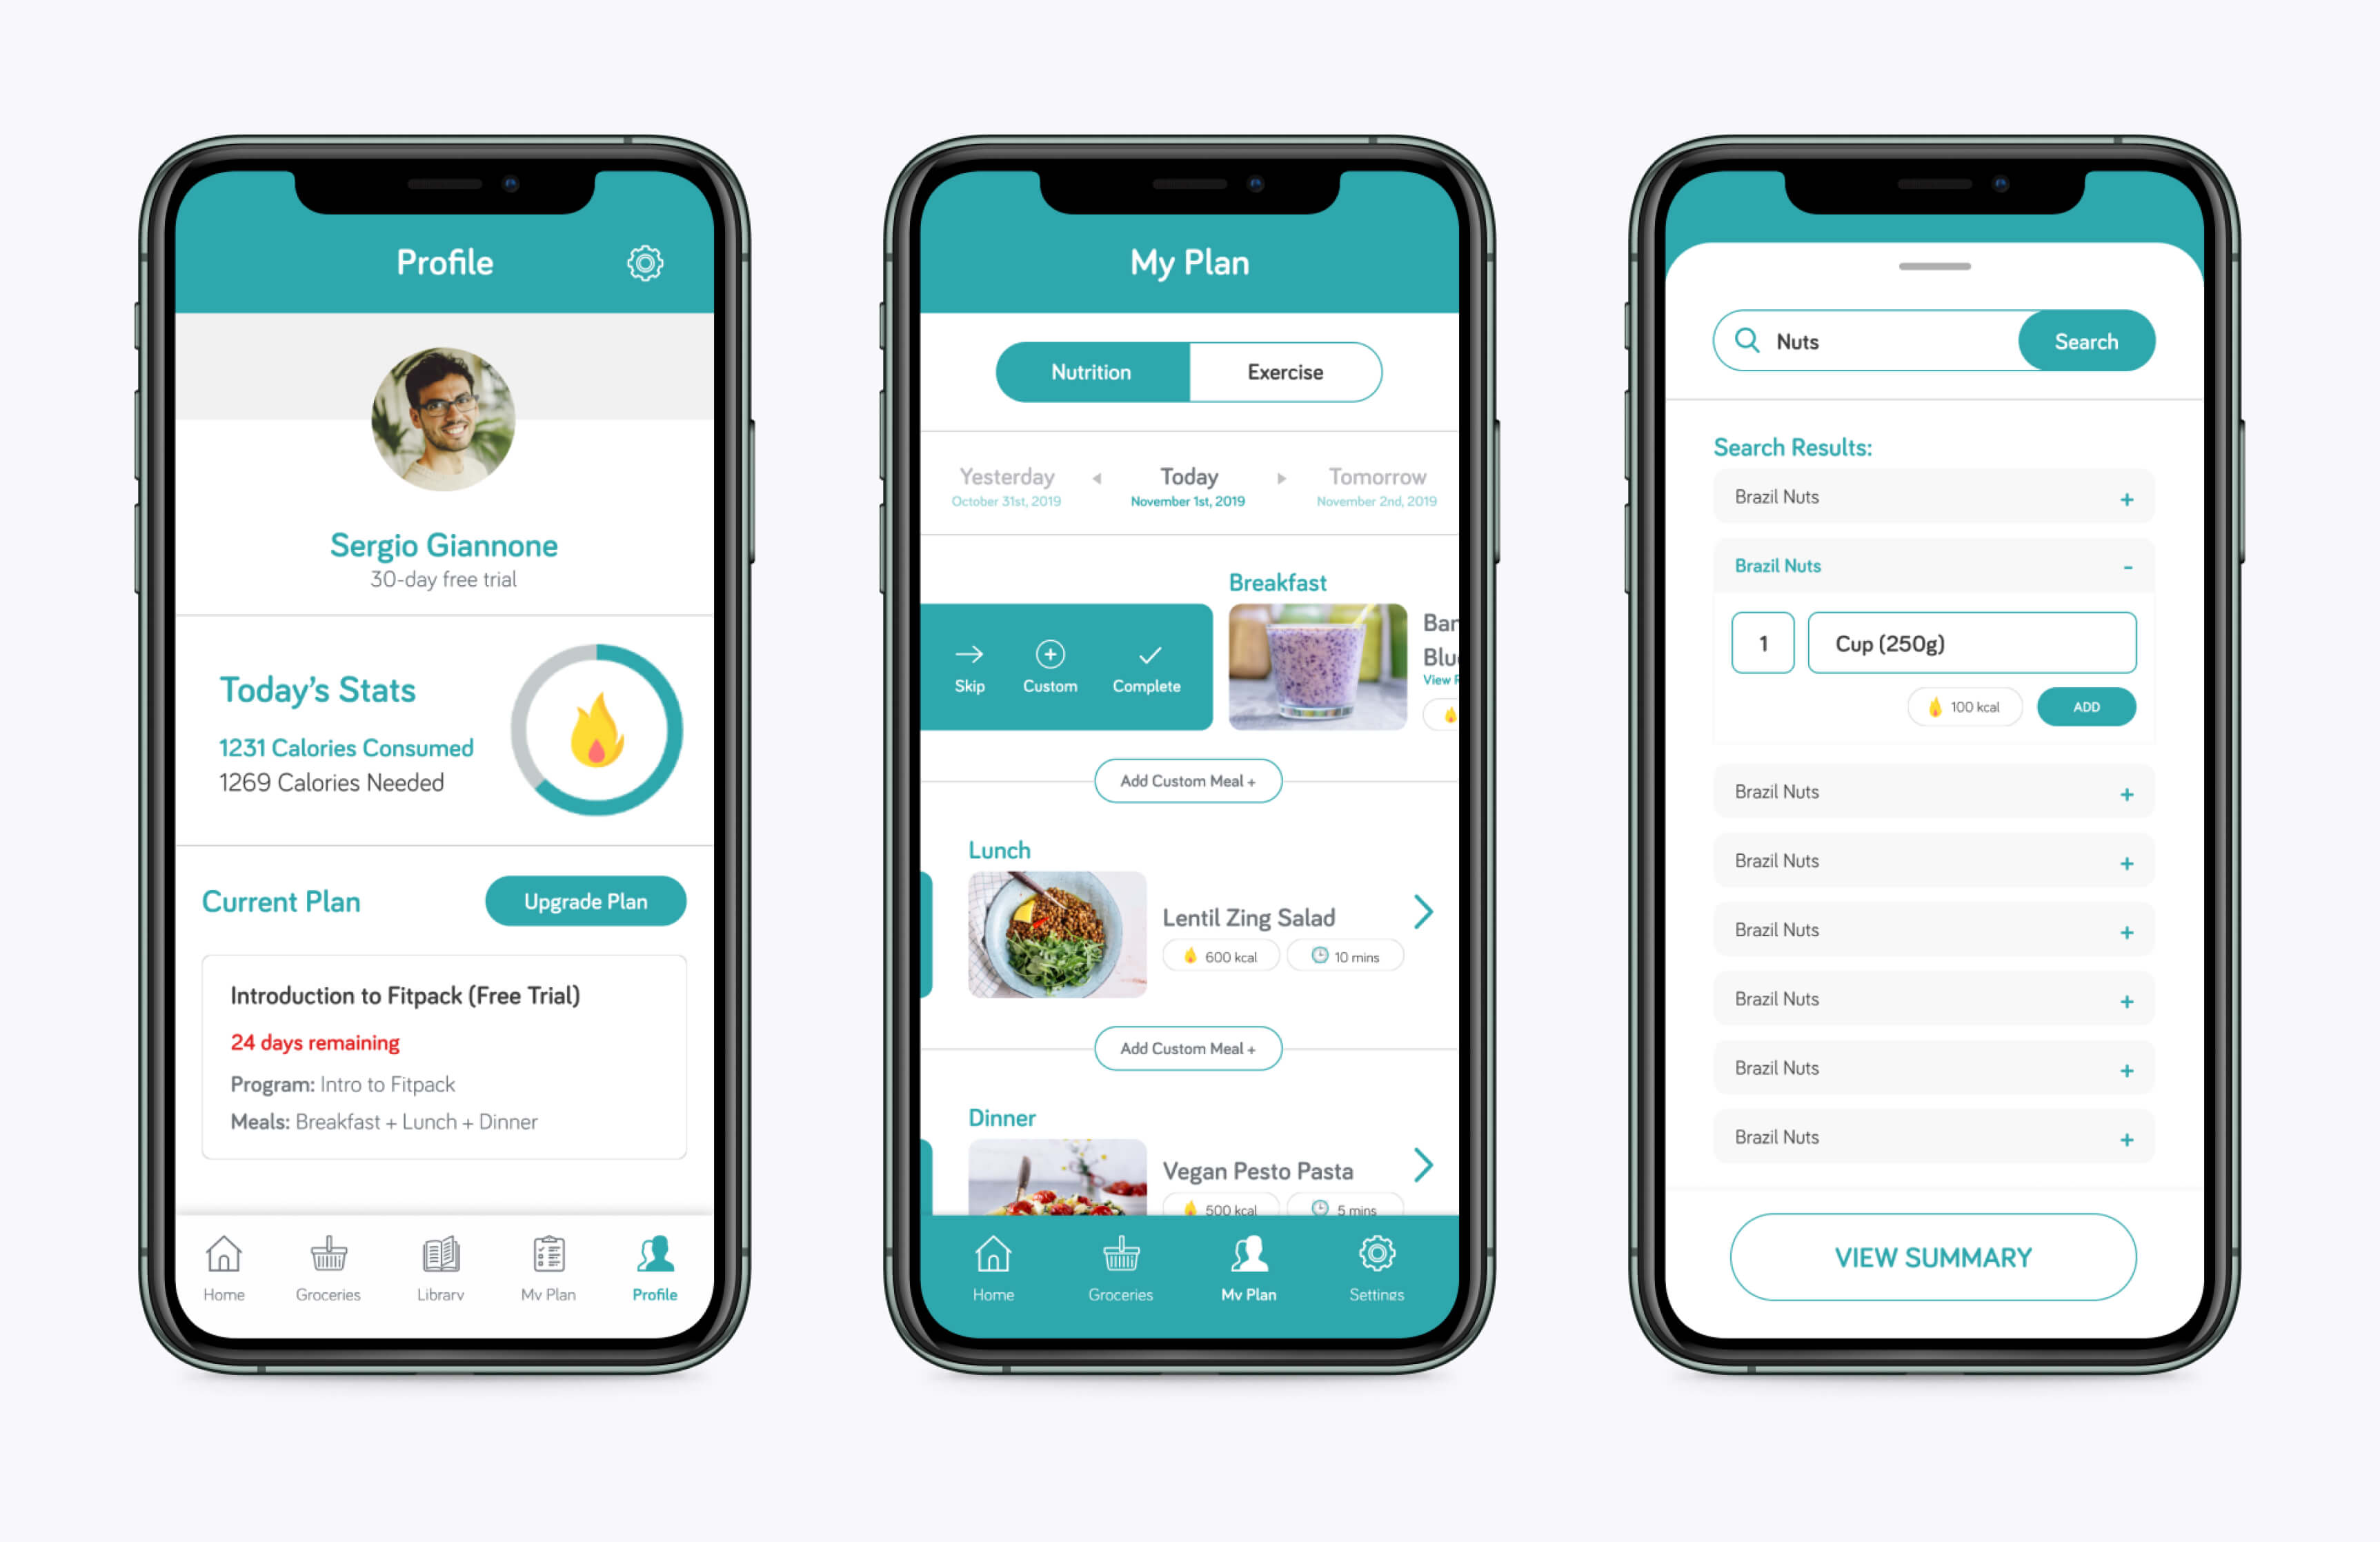 A digital platform to transform the way you live to attain long-term sustainable health and wellbeing goals.